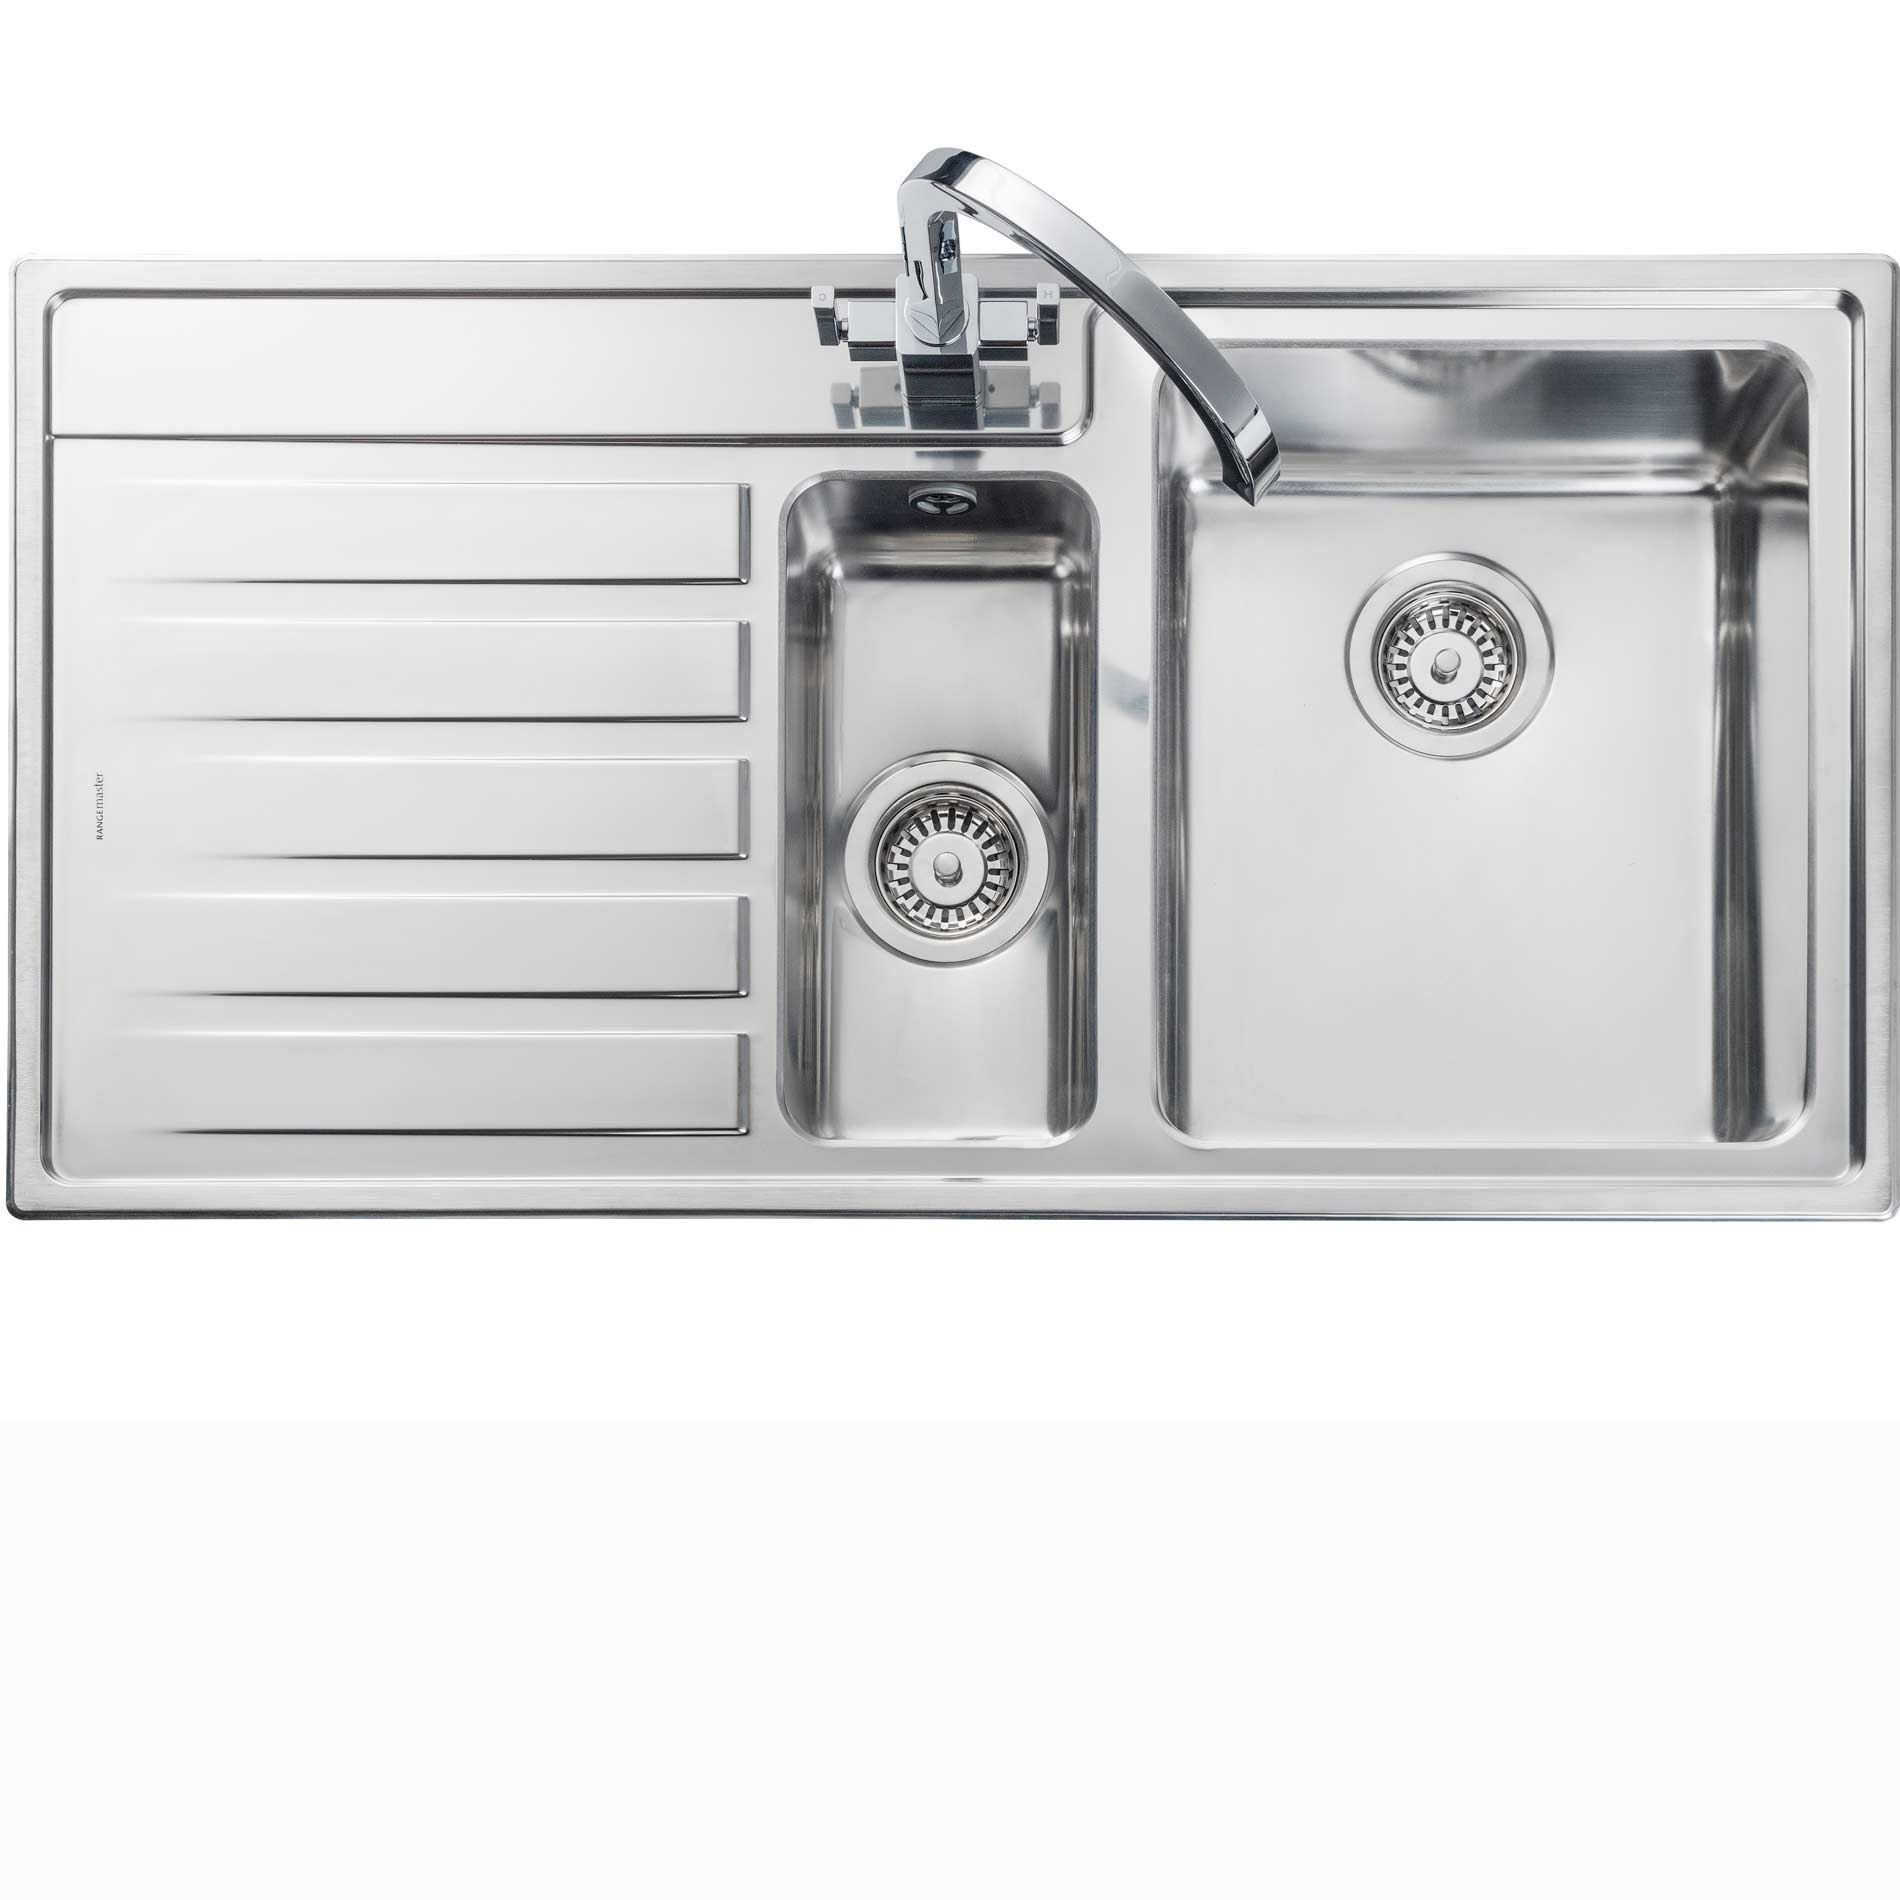 picture of rockford 1 5 rk9852 stainless steel sink rangemaster  rockford 1 5 rk9852 stainless steel sink   kitchen      rh   kitchensinksandtaps co uk